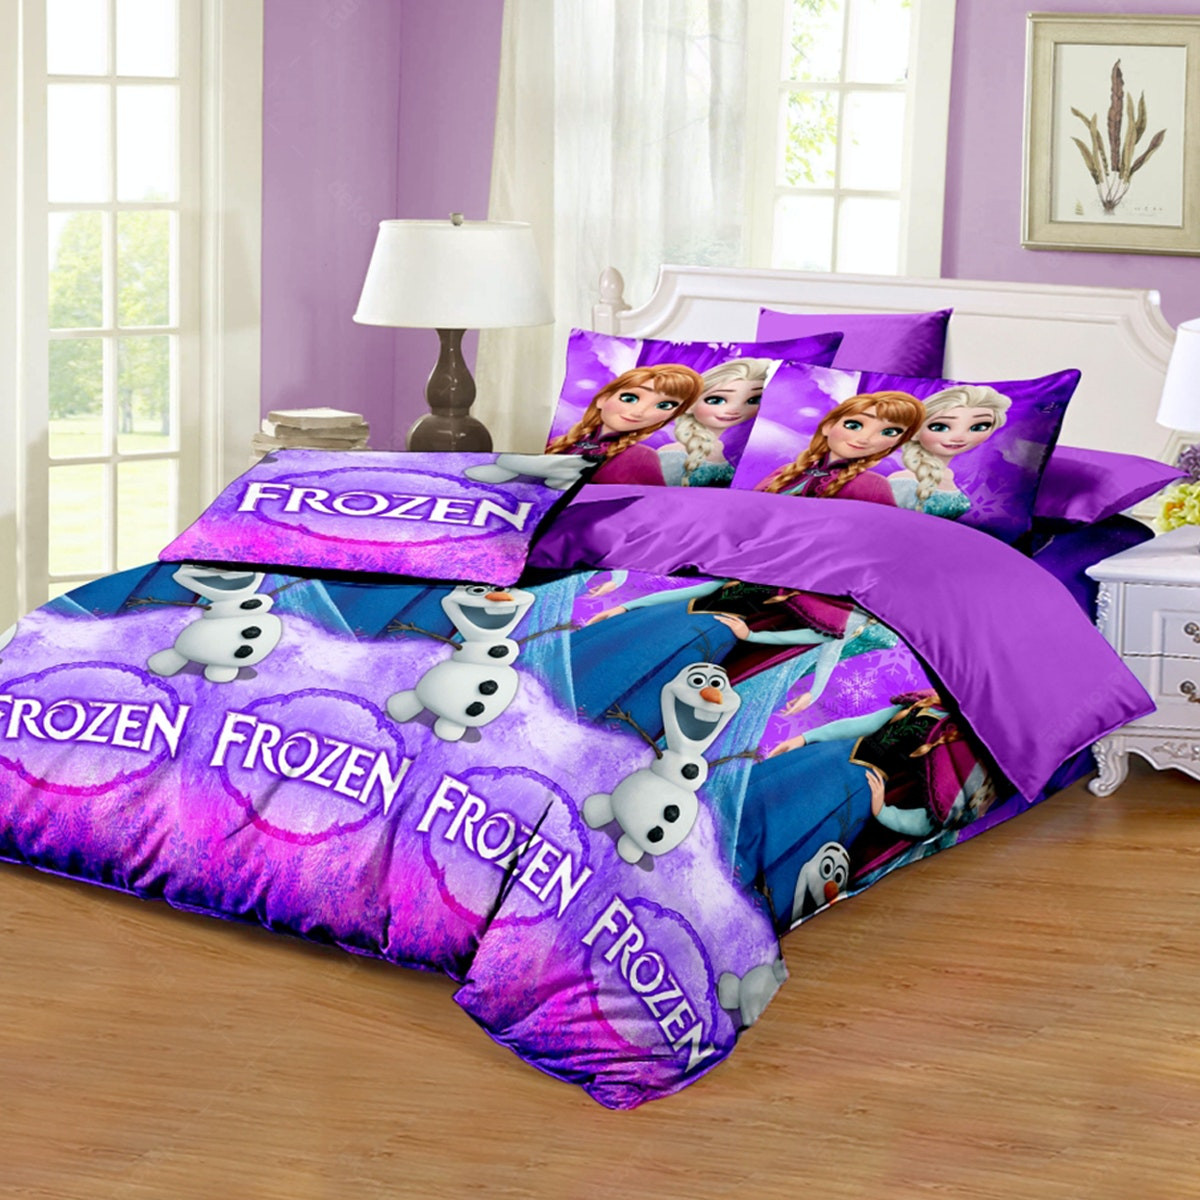 Pesona Disperse Sprei Frozen Lama Uk 160x200x20cm